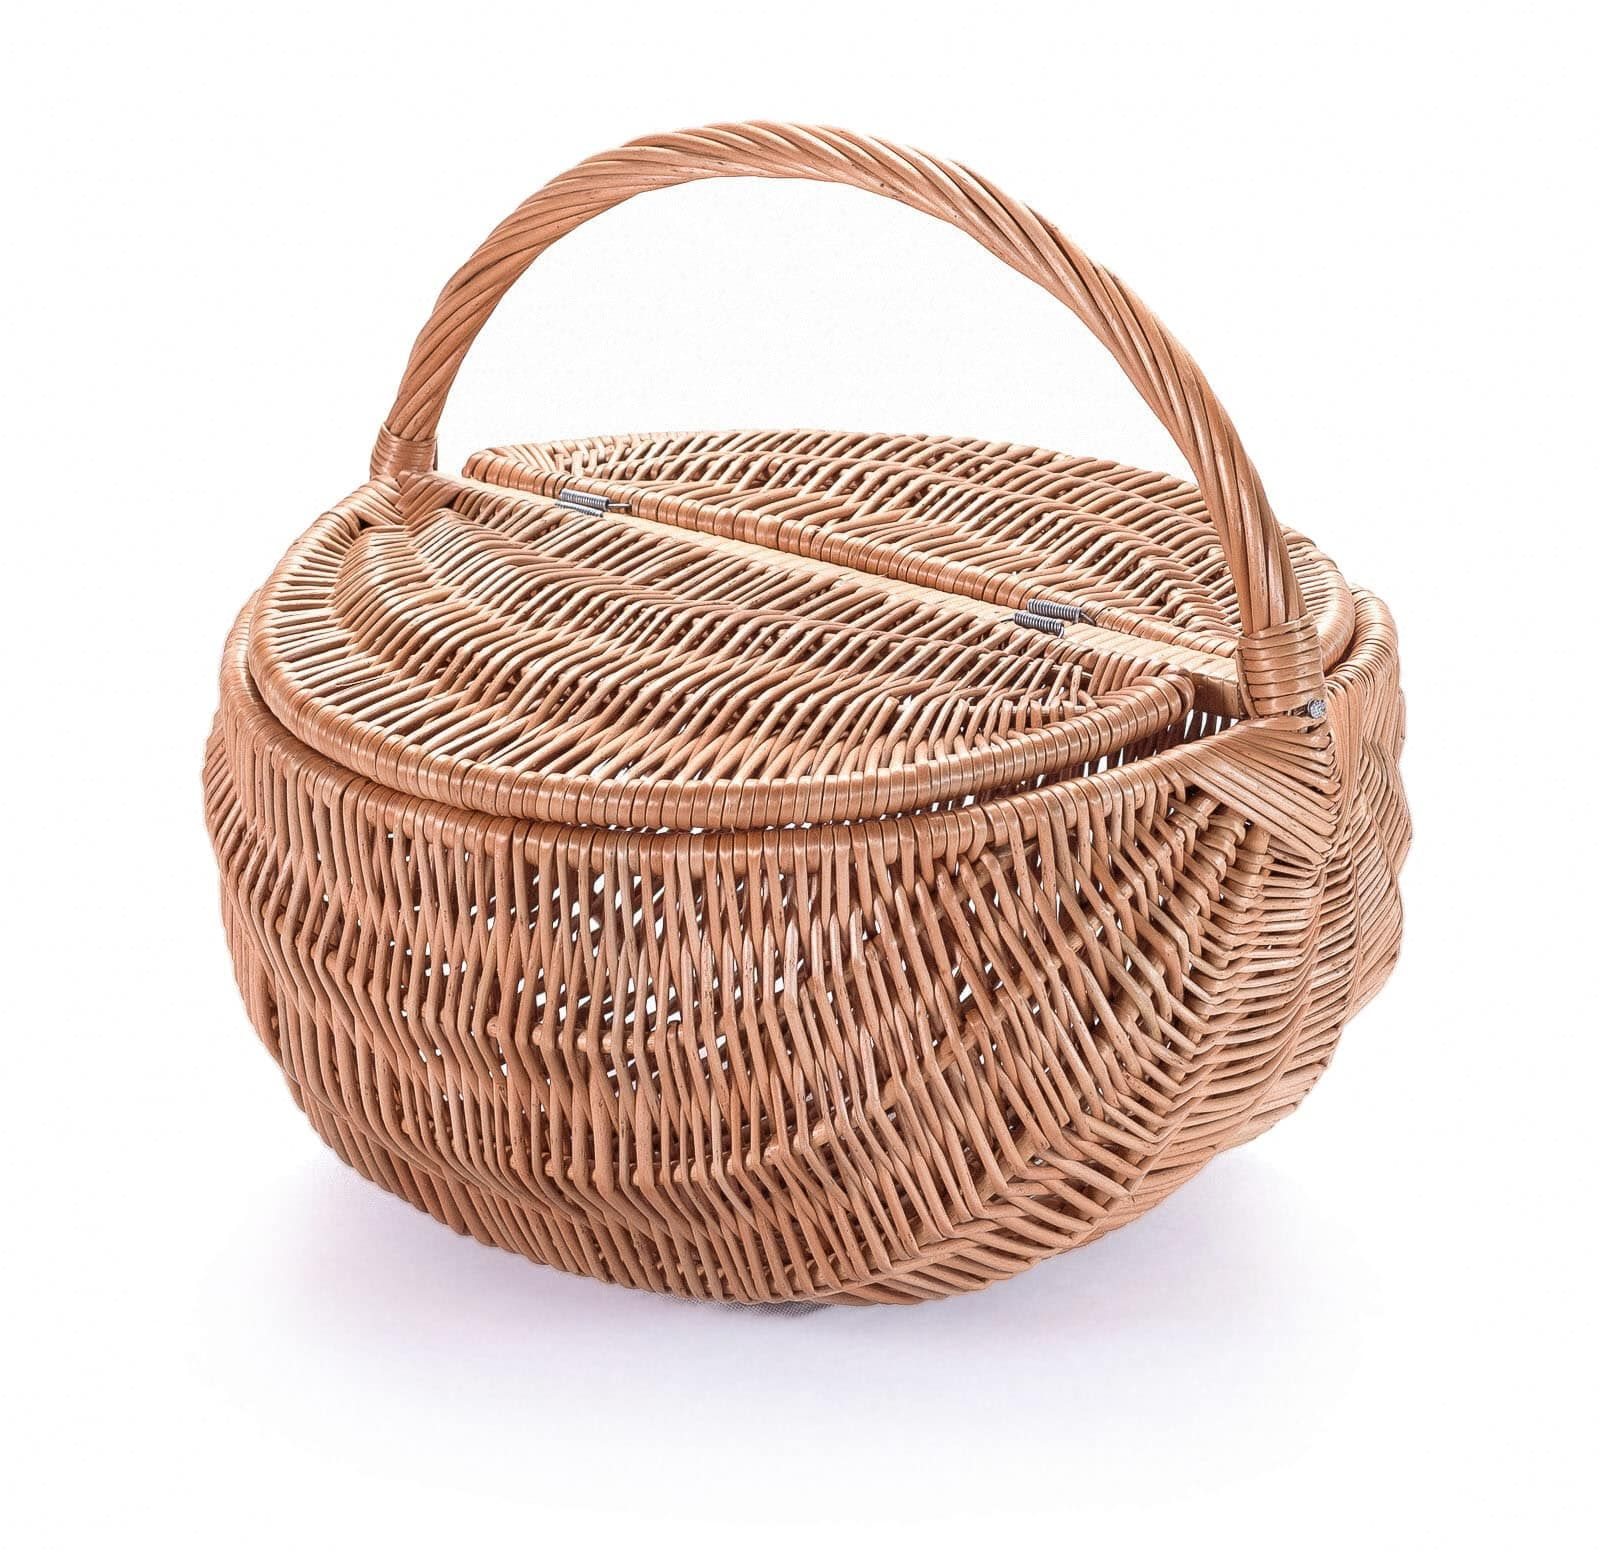 Round Wicker Baskets With Handle And Lid Large Willow Basket Hoohla Shop In 2020 Wicker Baskets Wicker Baskets With Handles Wicker